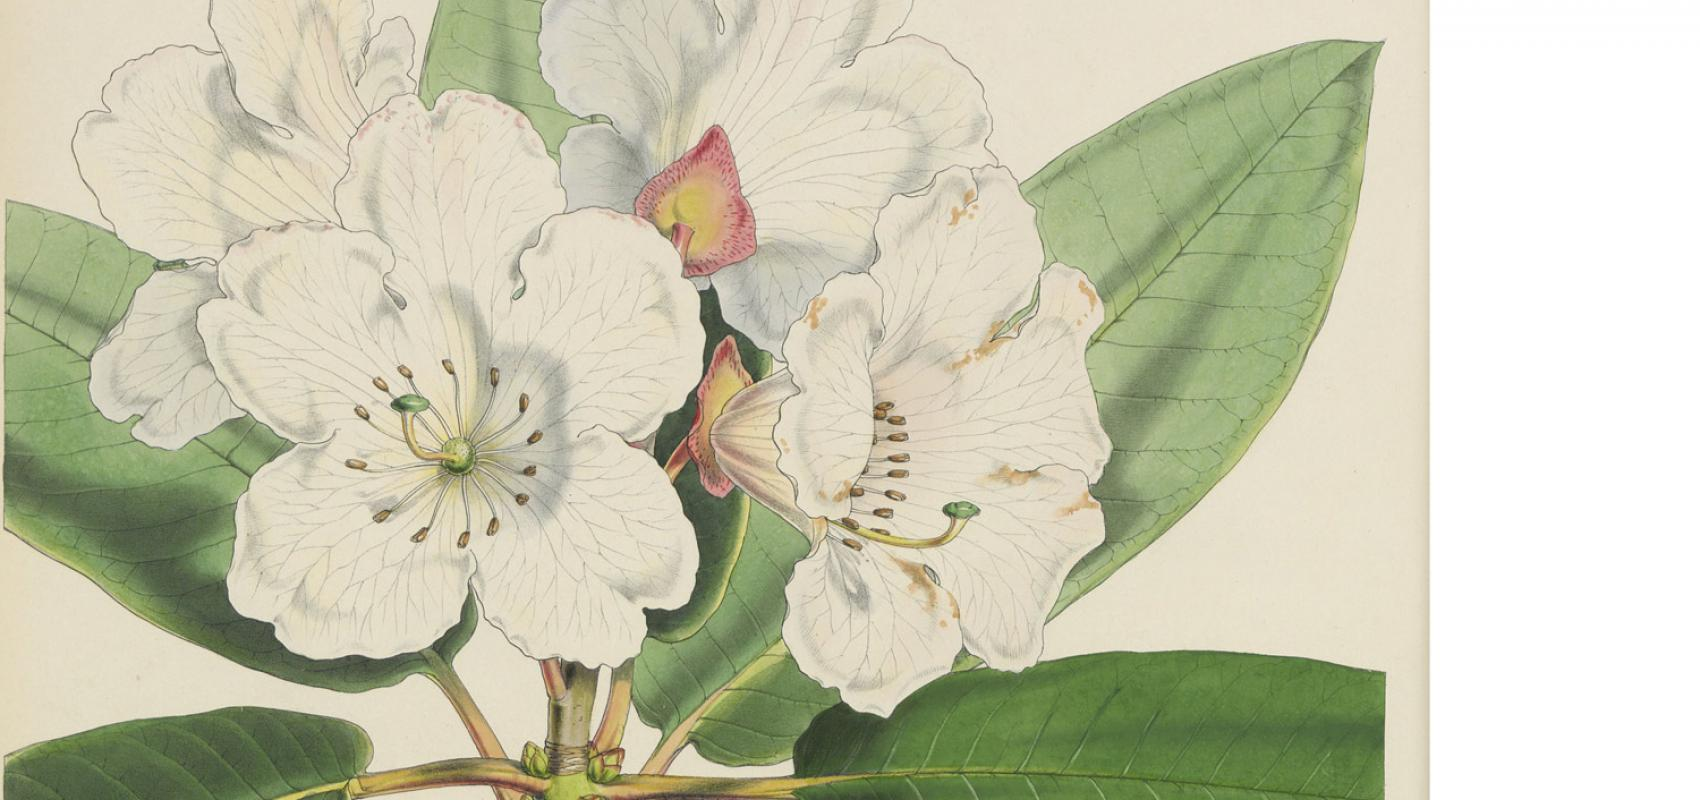 The Rhododendrons of Sikkim-Himalaya -  - Joseph Dalton Hooker / BnF